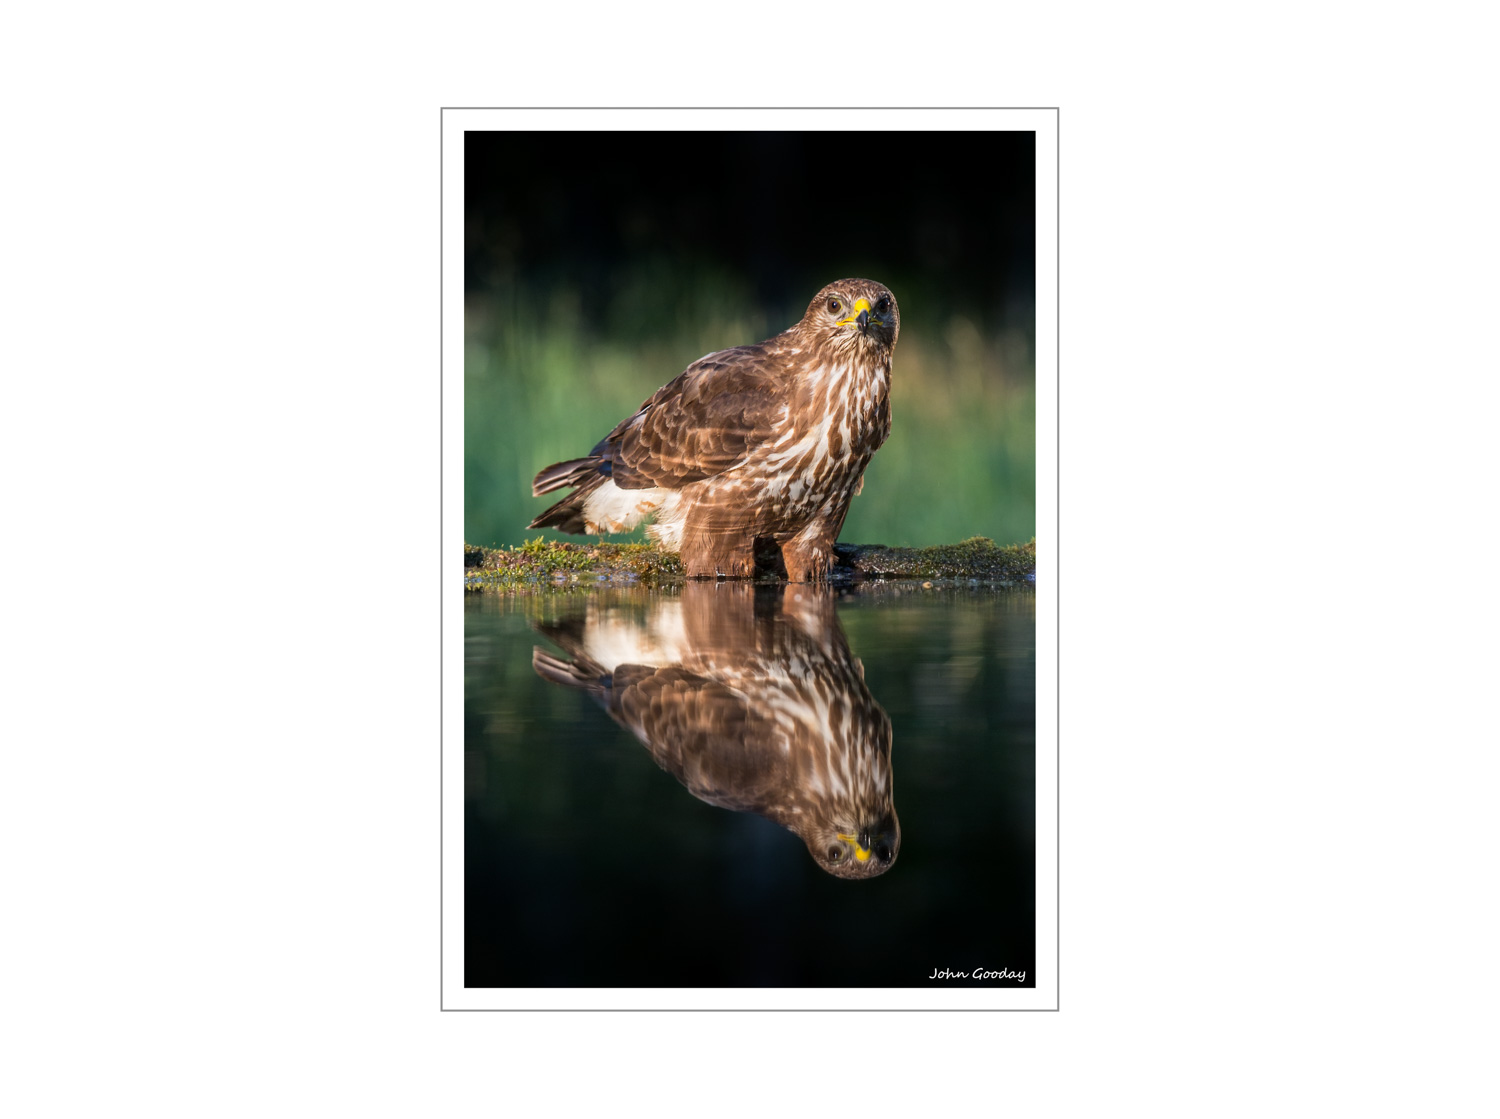 (Image: Common Buzzard. Canon EOS 5D Mark III, EF 70-200mm f/2.8L IS II, 1/200 sec @ f/4.5, ISO 1250, tripod, hide).